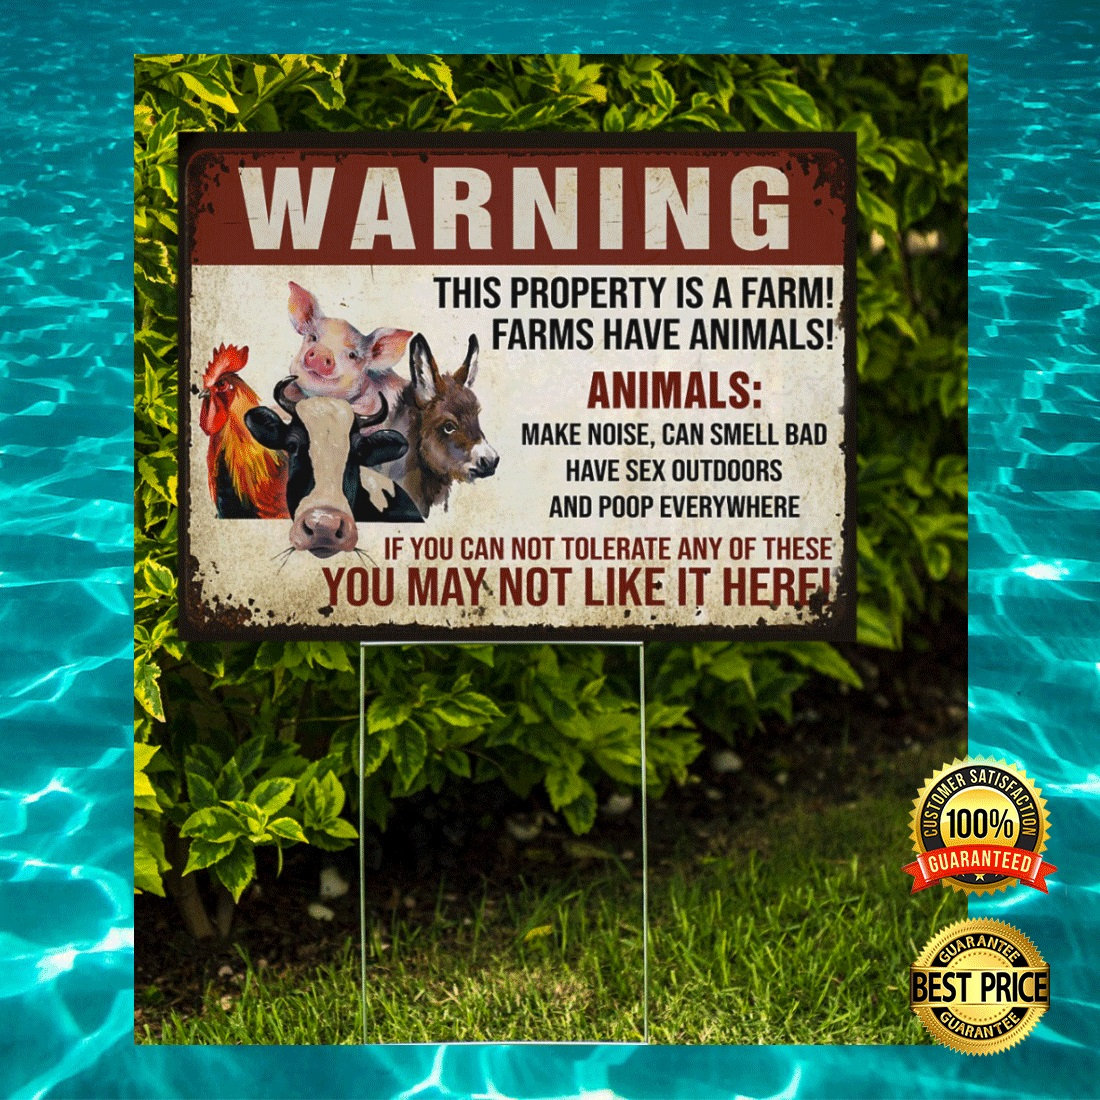 WARNING THIS PROPERTY IS A FARM FARMS HAVE ANIMALS YARN SIGN 4